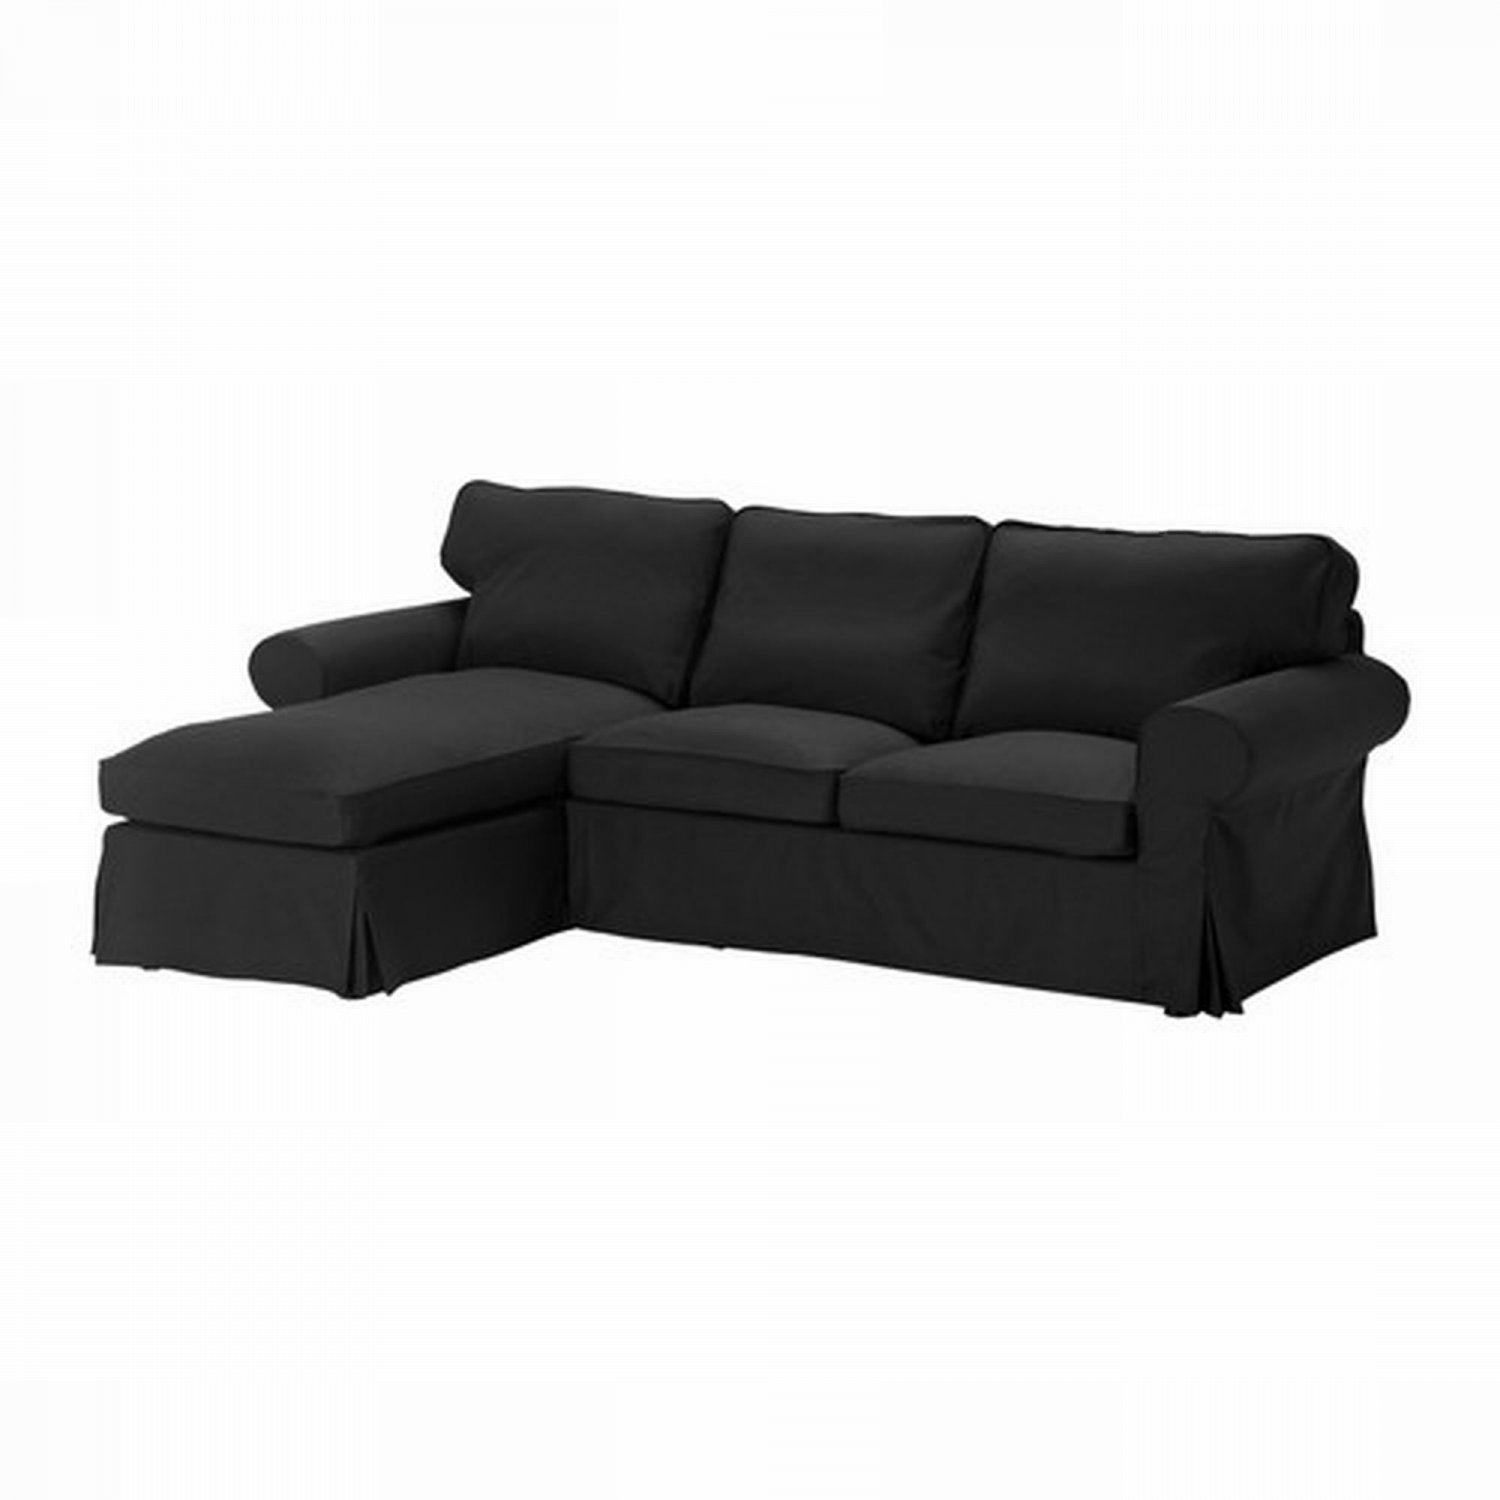 Ikea ektorp 2 seat loveseat sofa with chaise cover slipcover idemo black - Ikea chaise stockholm ...